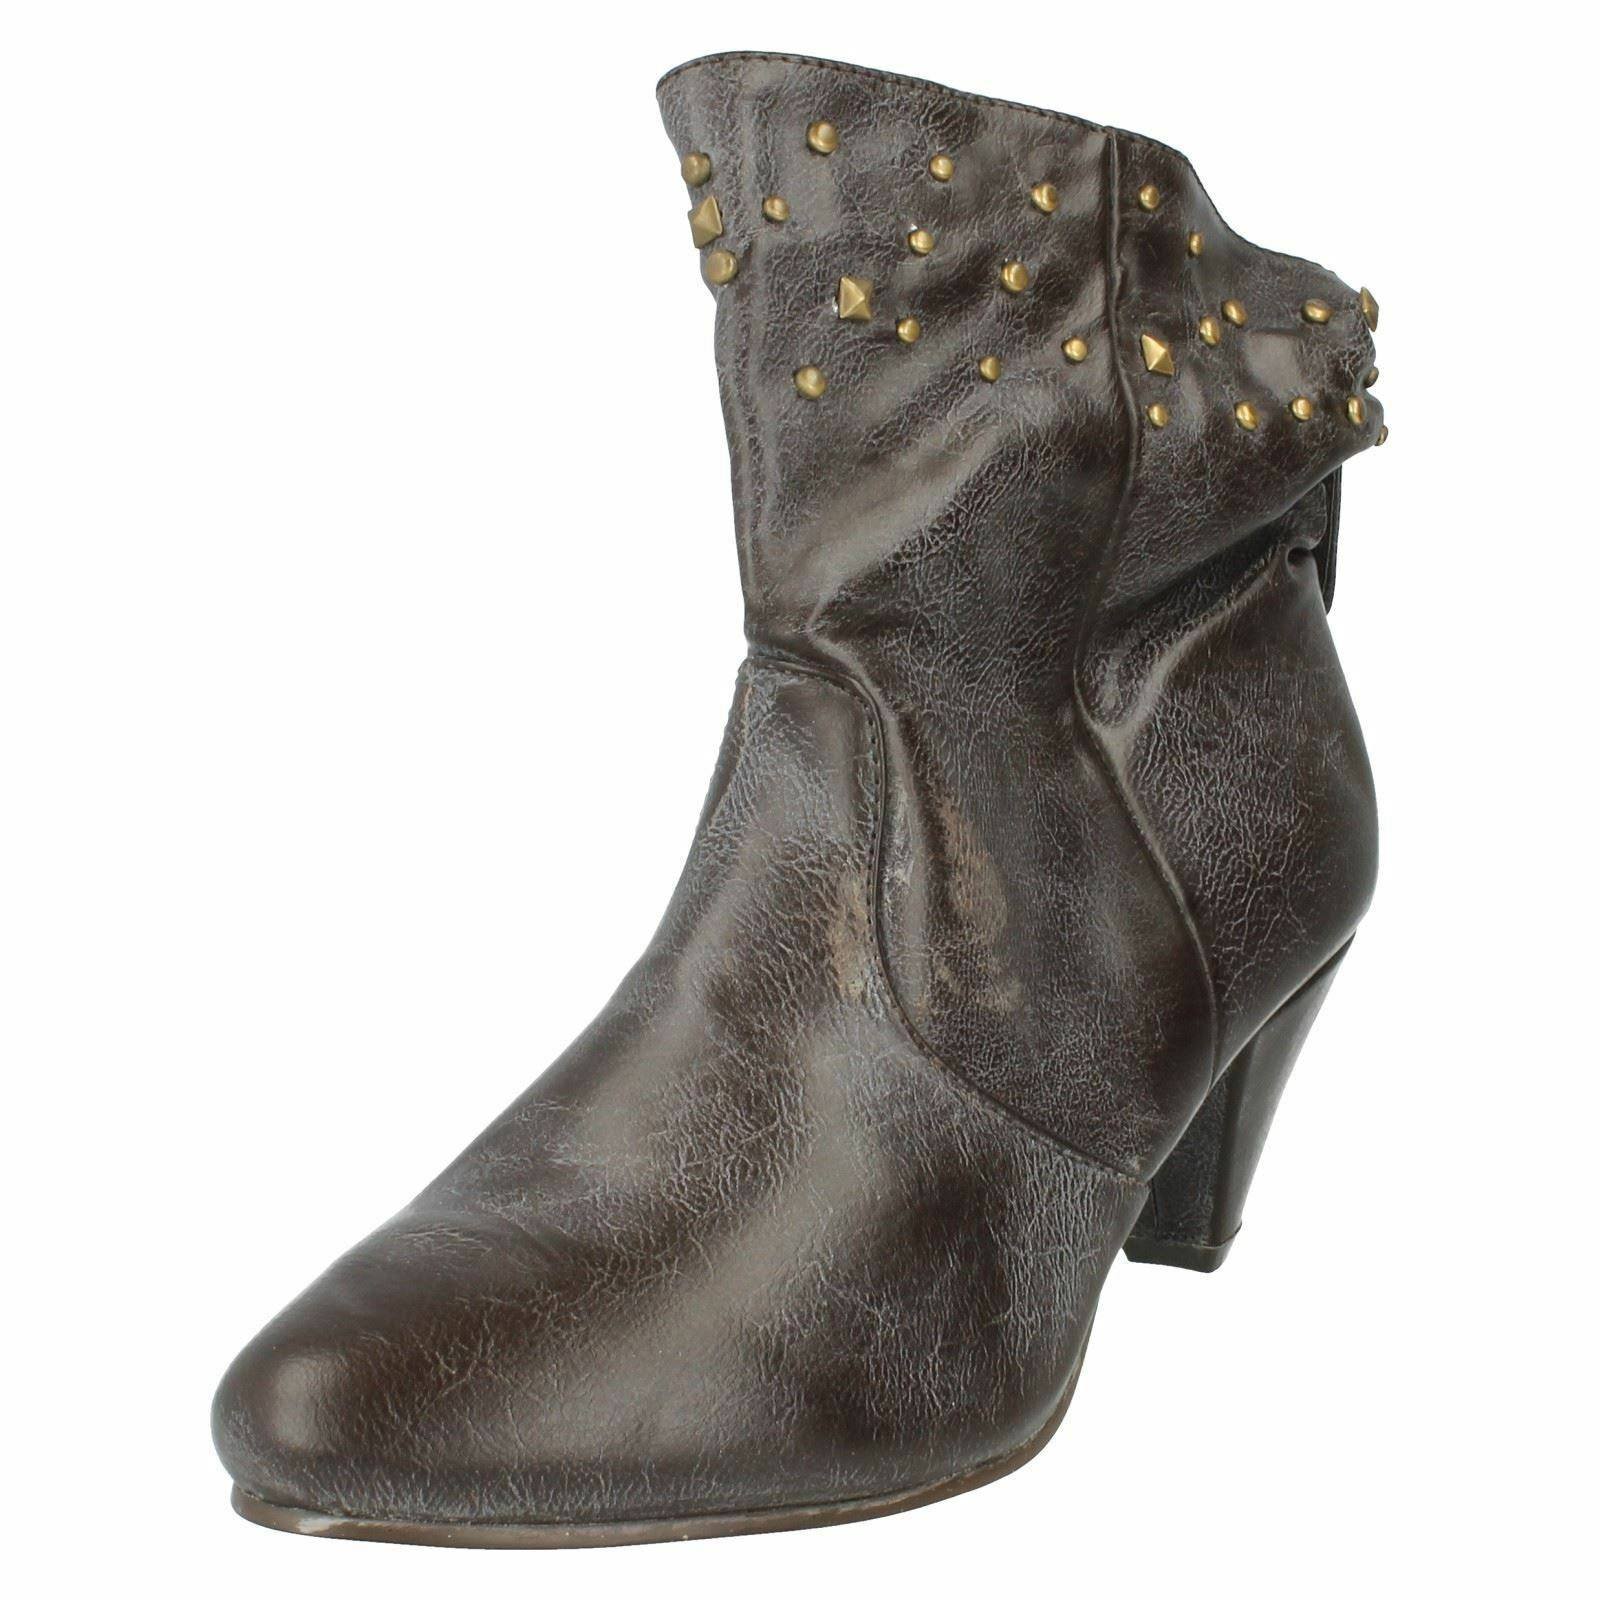 LADIES SPOT ON SLIP ON KITTEN HEEL BROWN WINTER CASUAL ANKLE BOOTS SHOES F5656